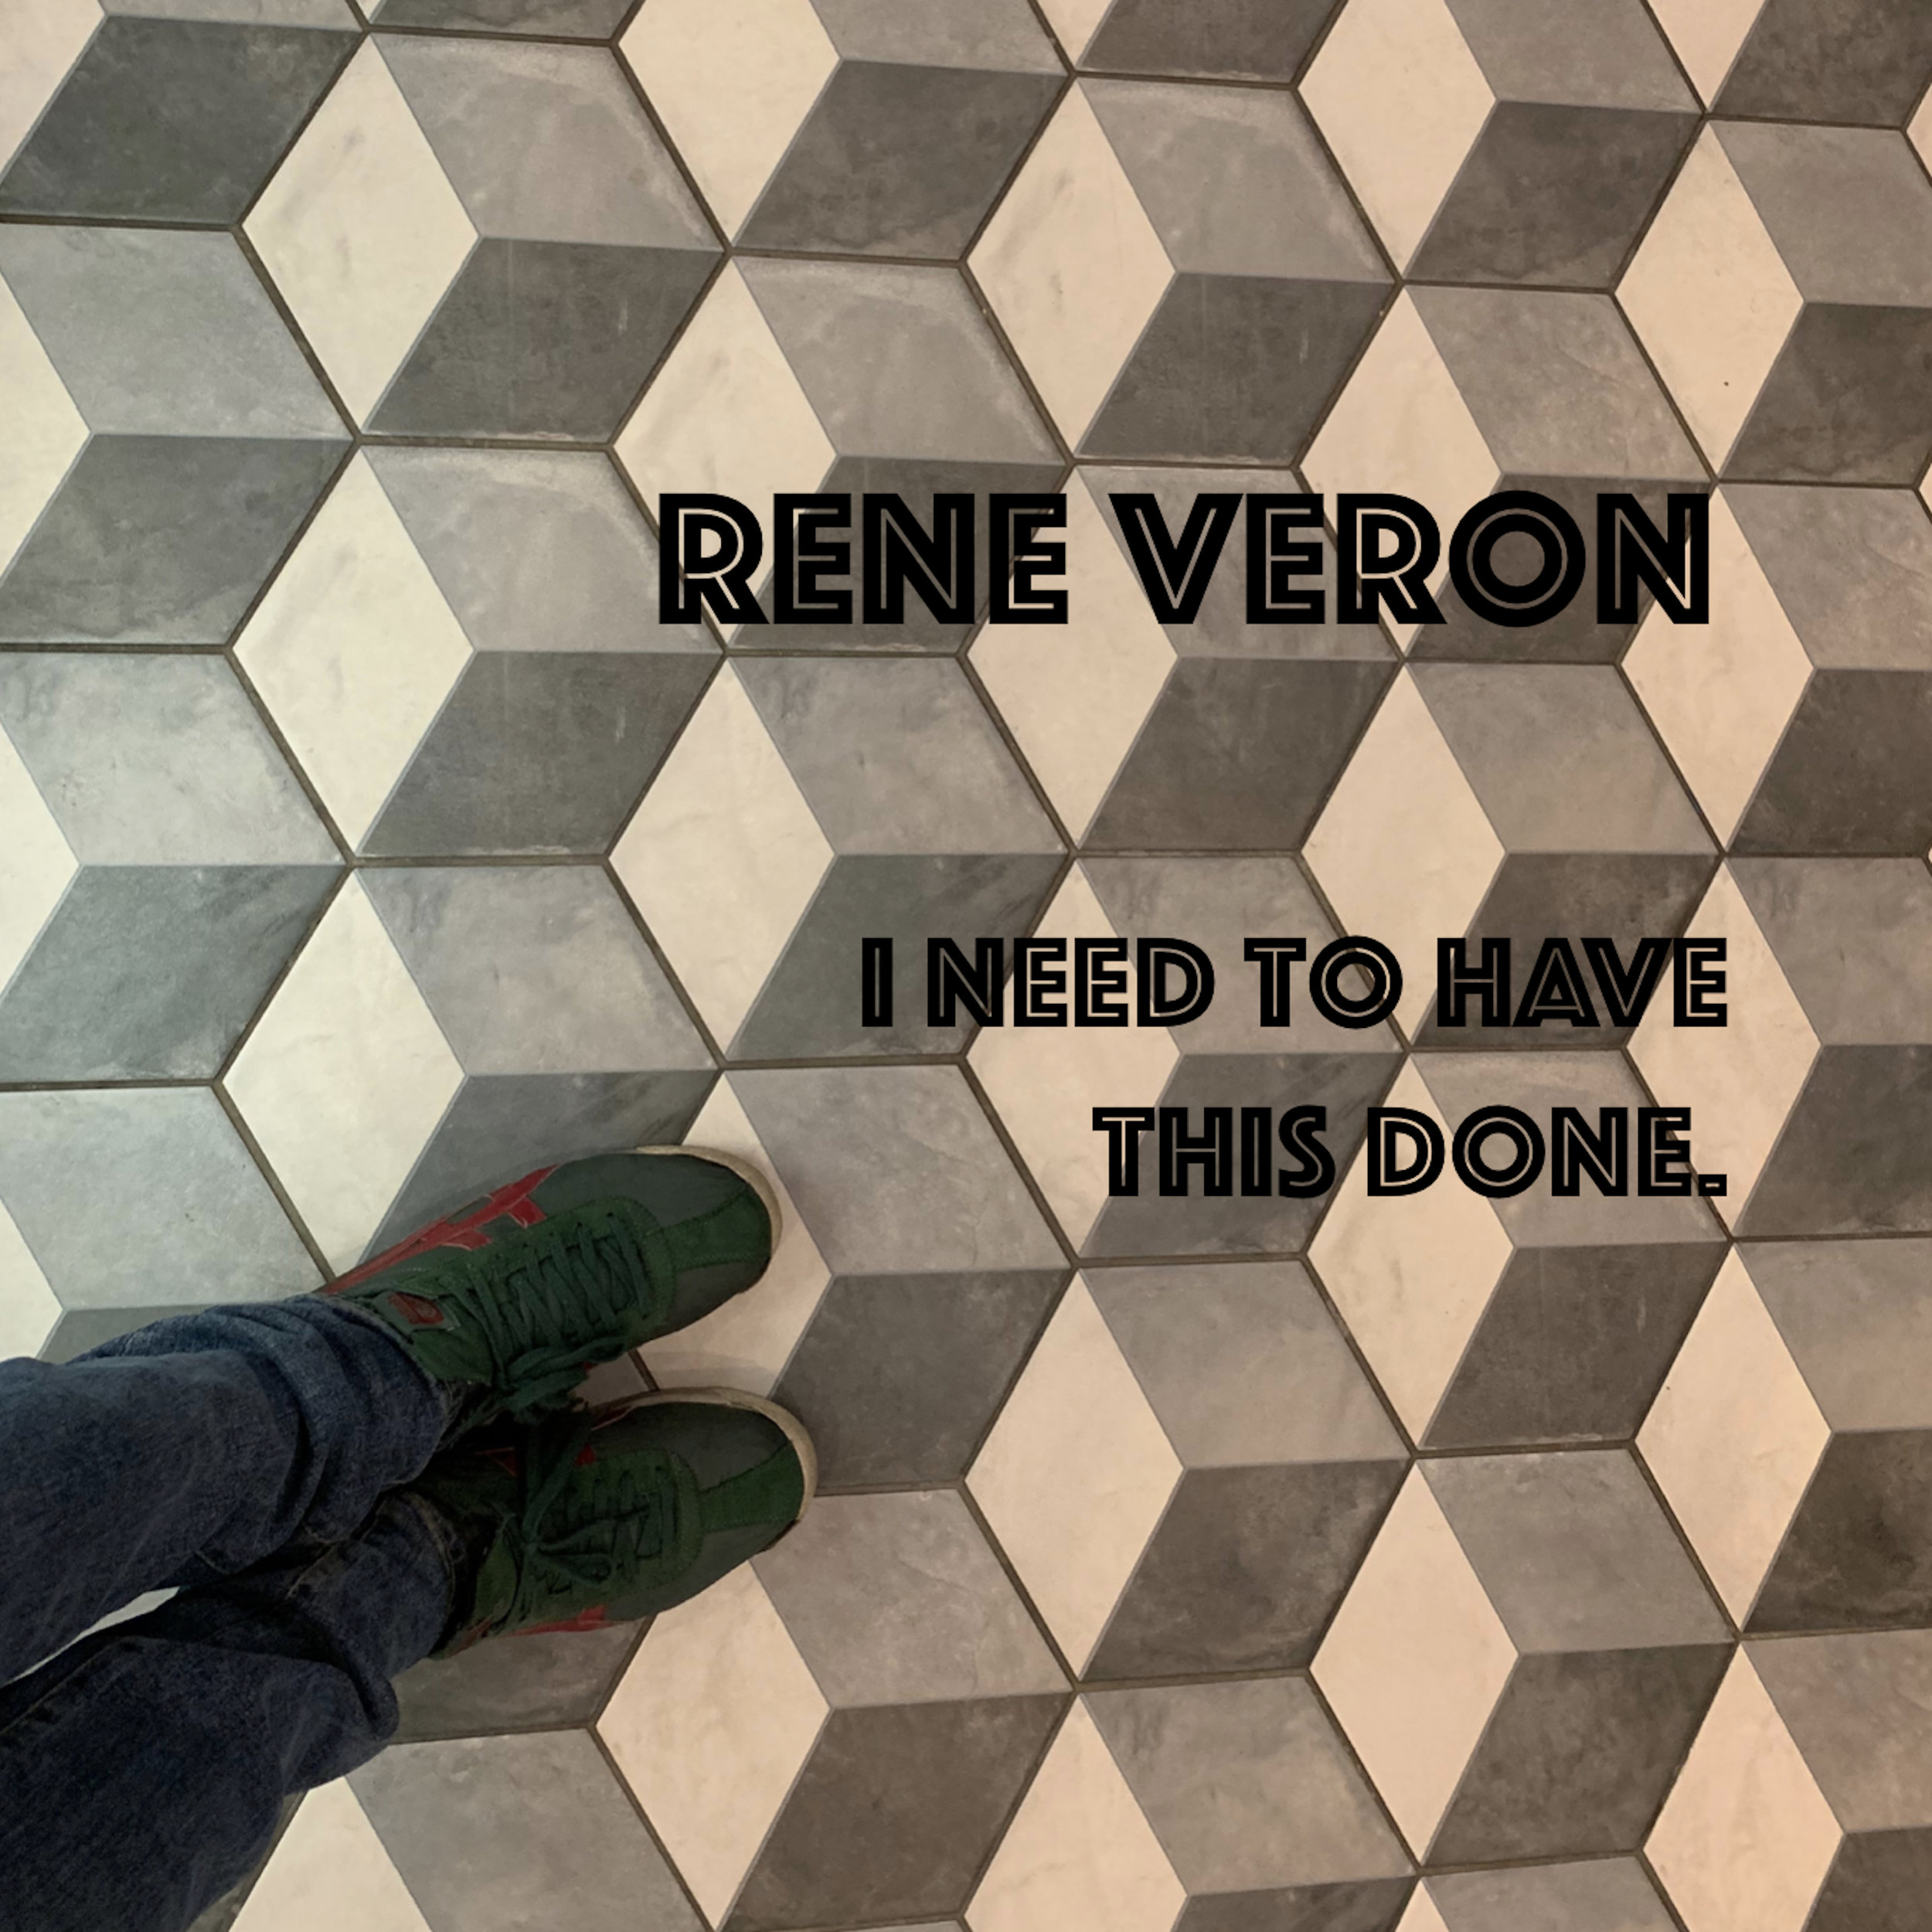 Rene Veron - I need to have this done